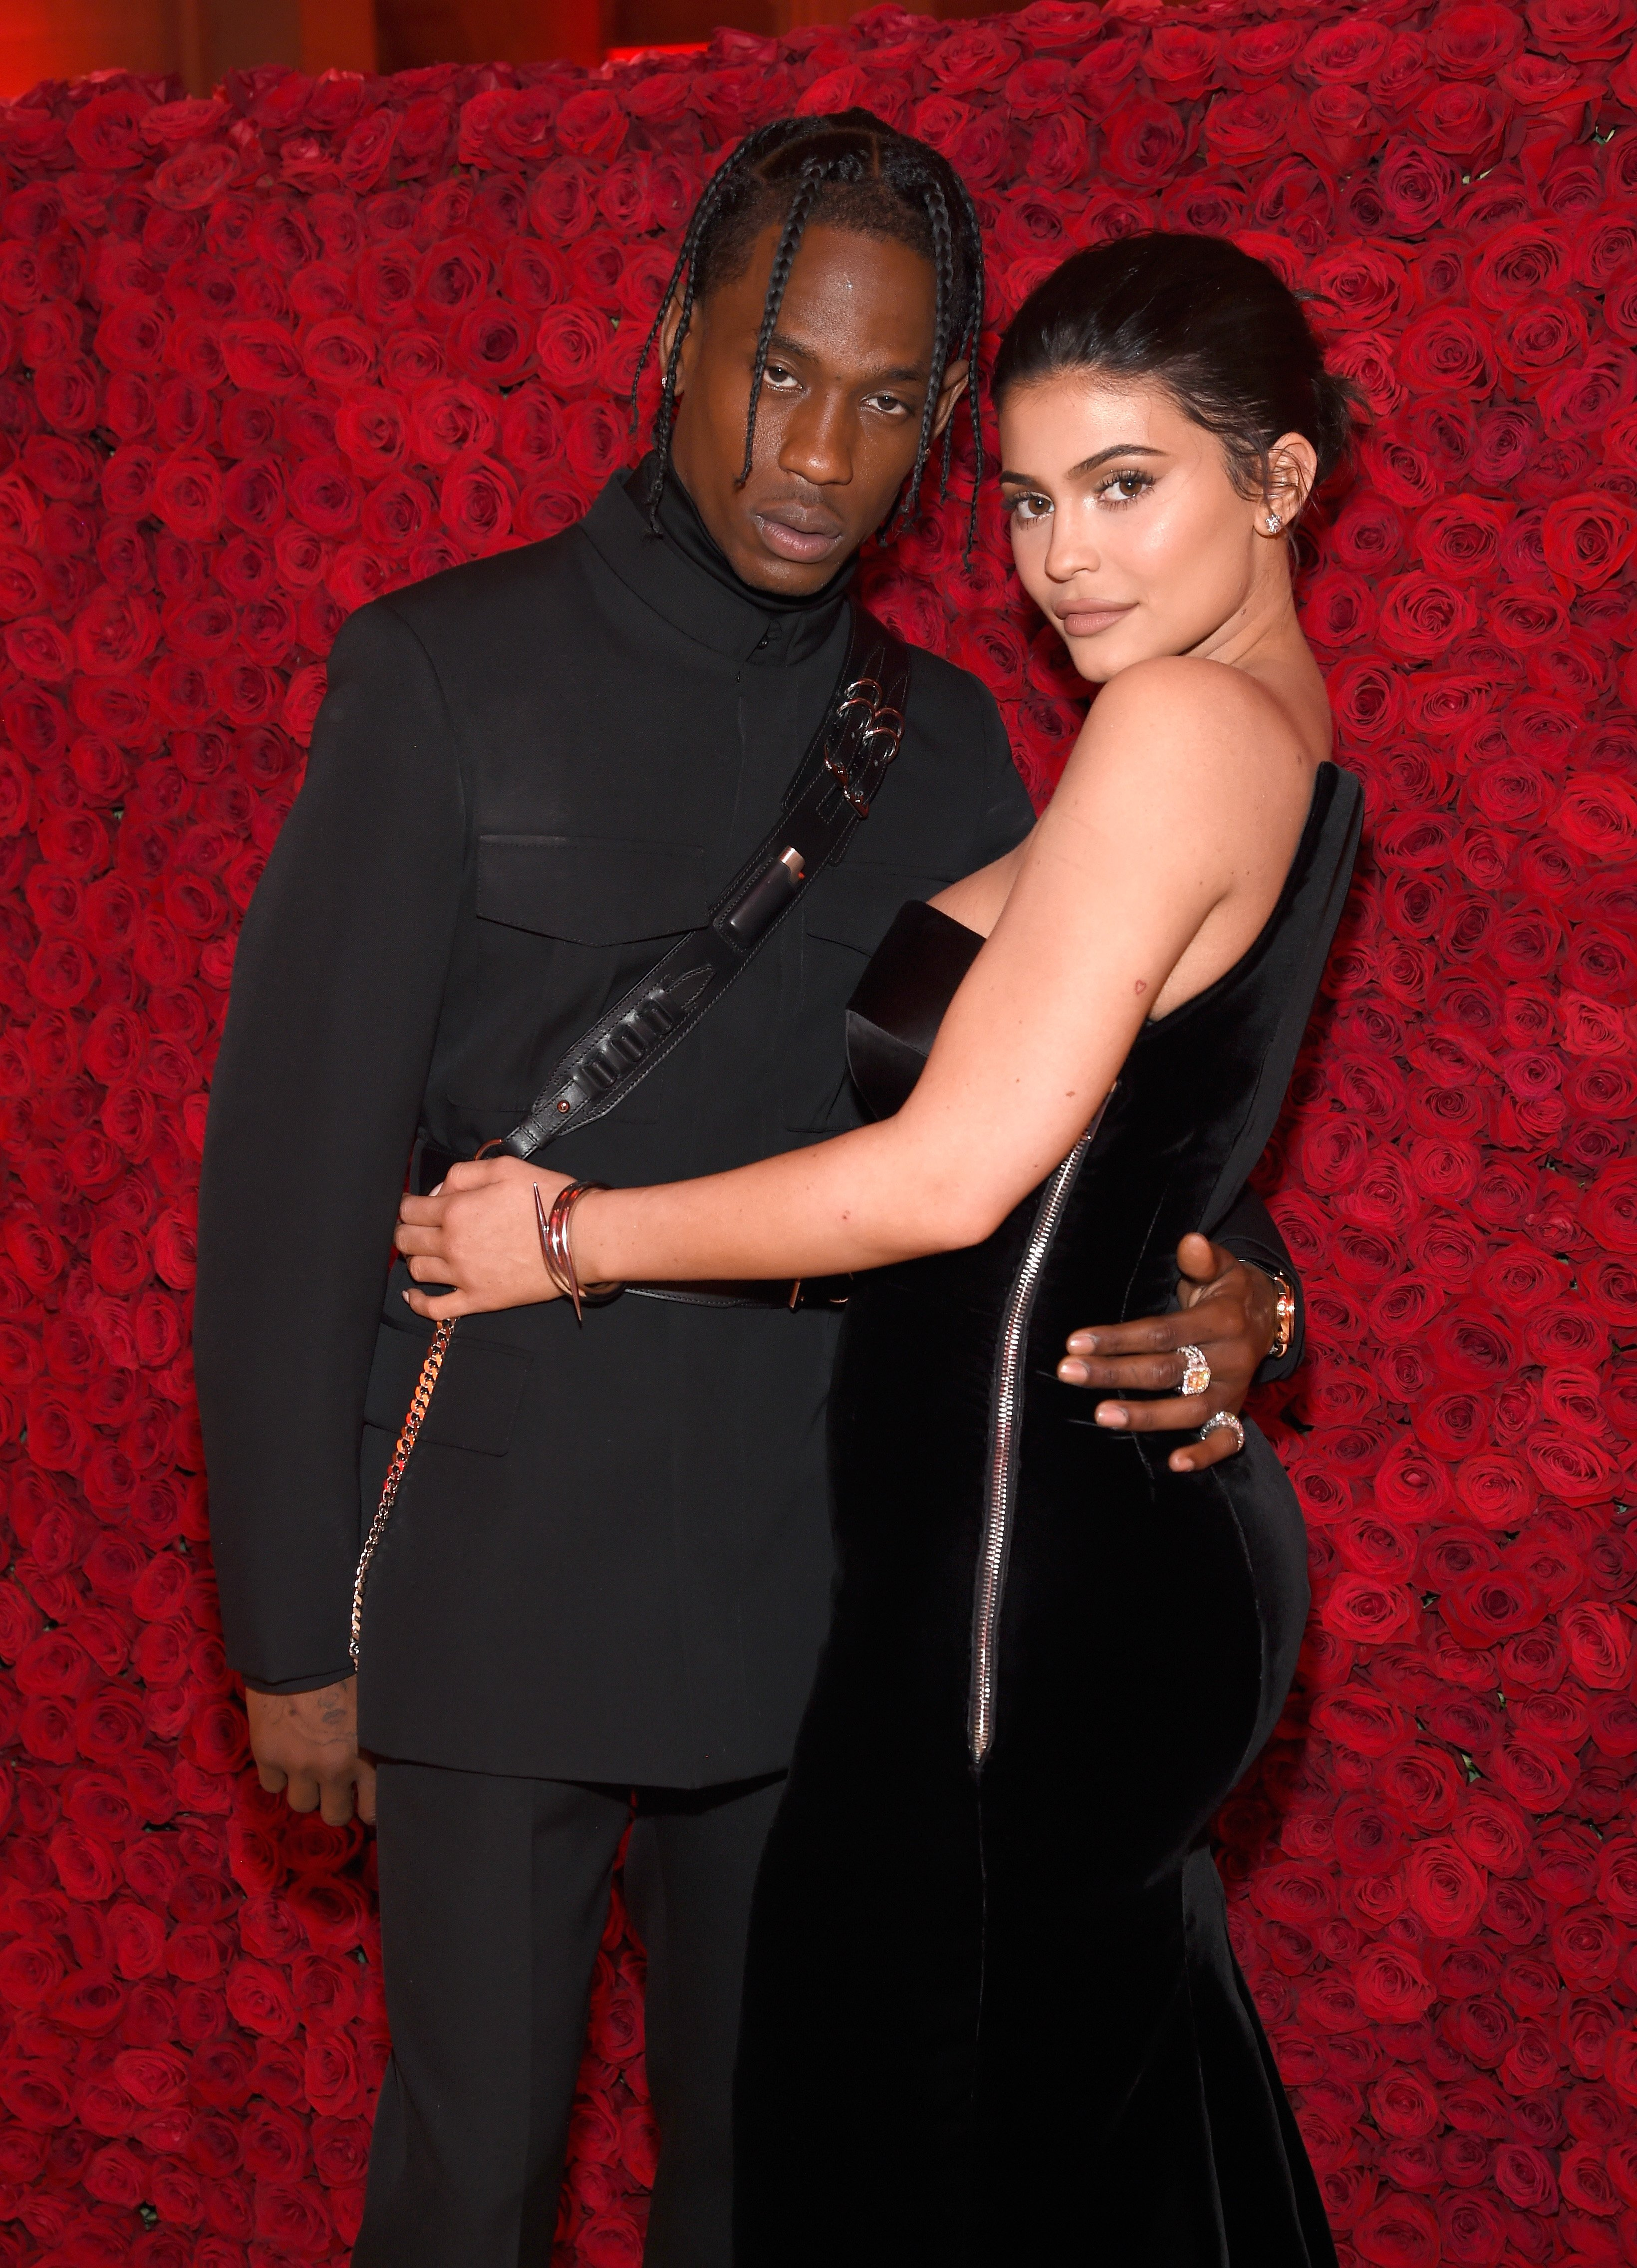 ravis Scott and Kylie Jenner attend the Heavenly Bodies: Fashion & The Catholic Imagination Costume Institute Gala at The Metropolitan Museum of Art on May 7, 2018. | Source: Getty Images